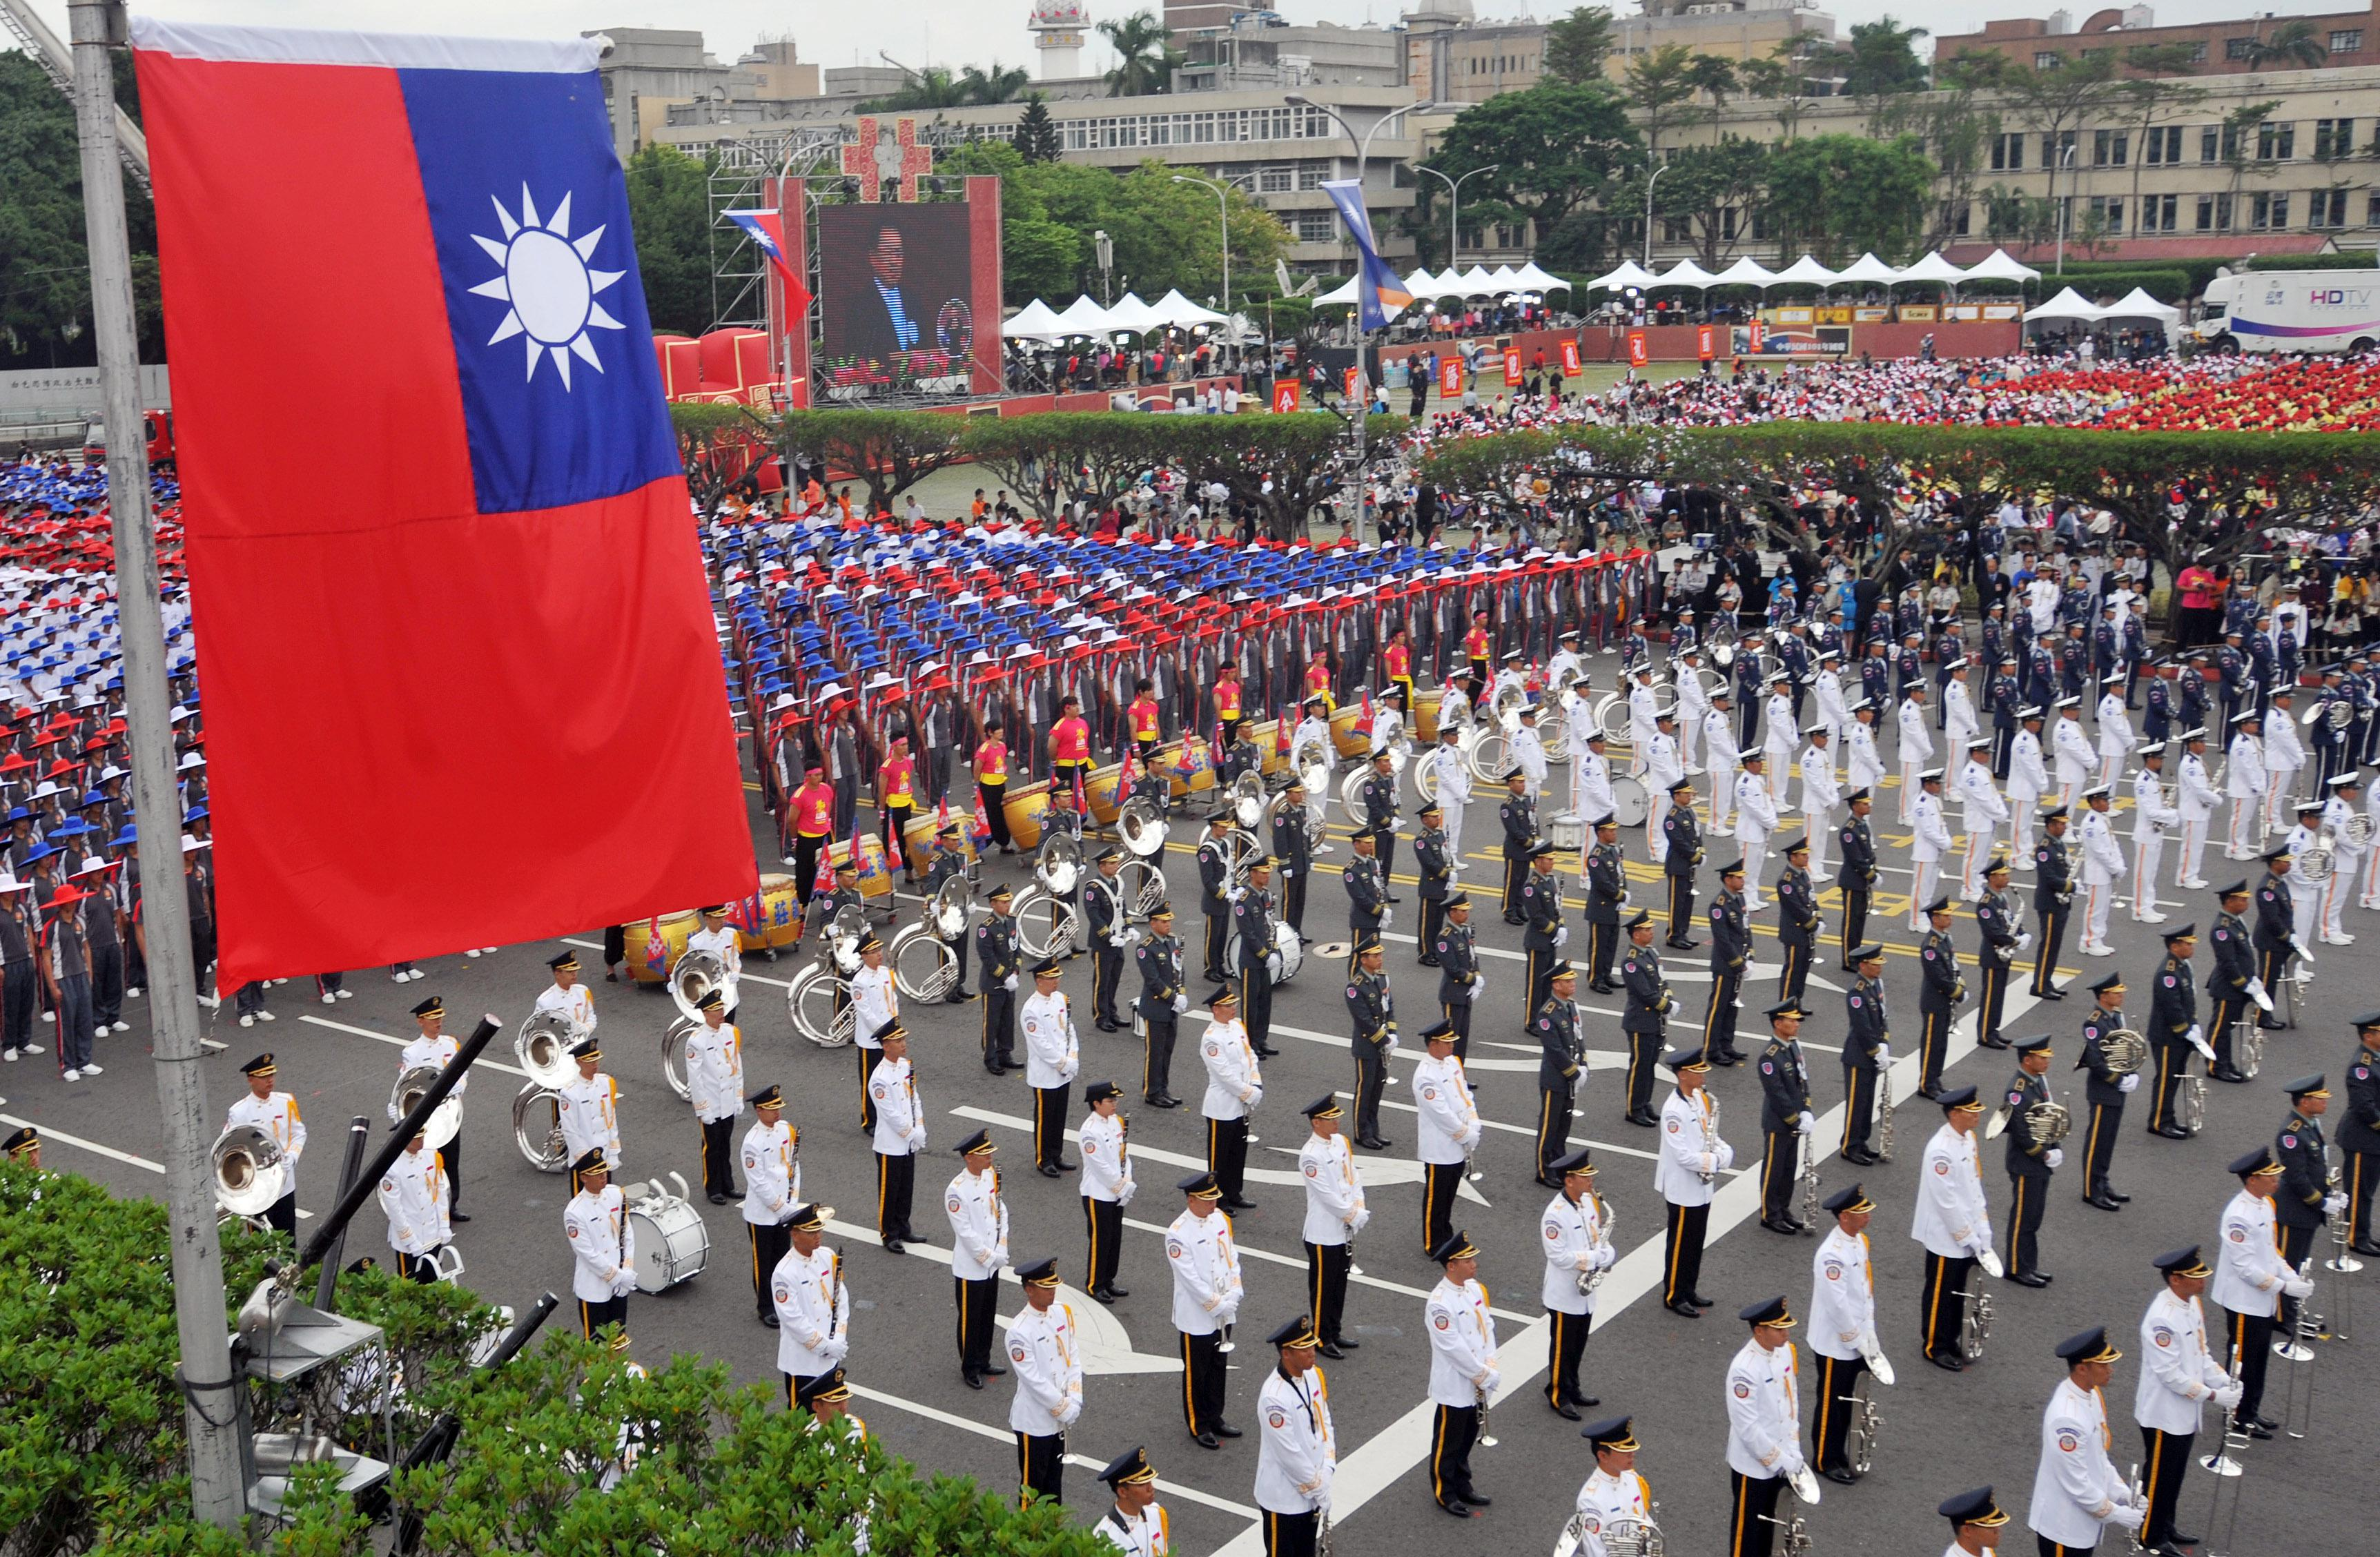 Members of a Taiwanese military band and people wearing hats in the colors of Taiwan's national flag.